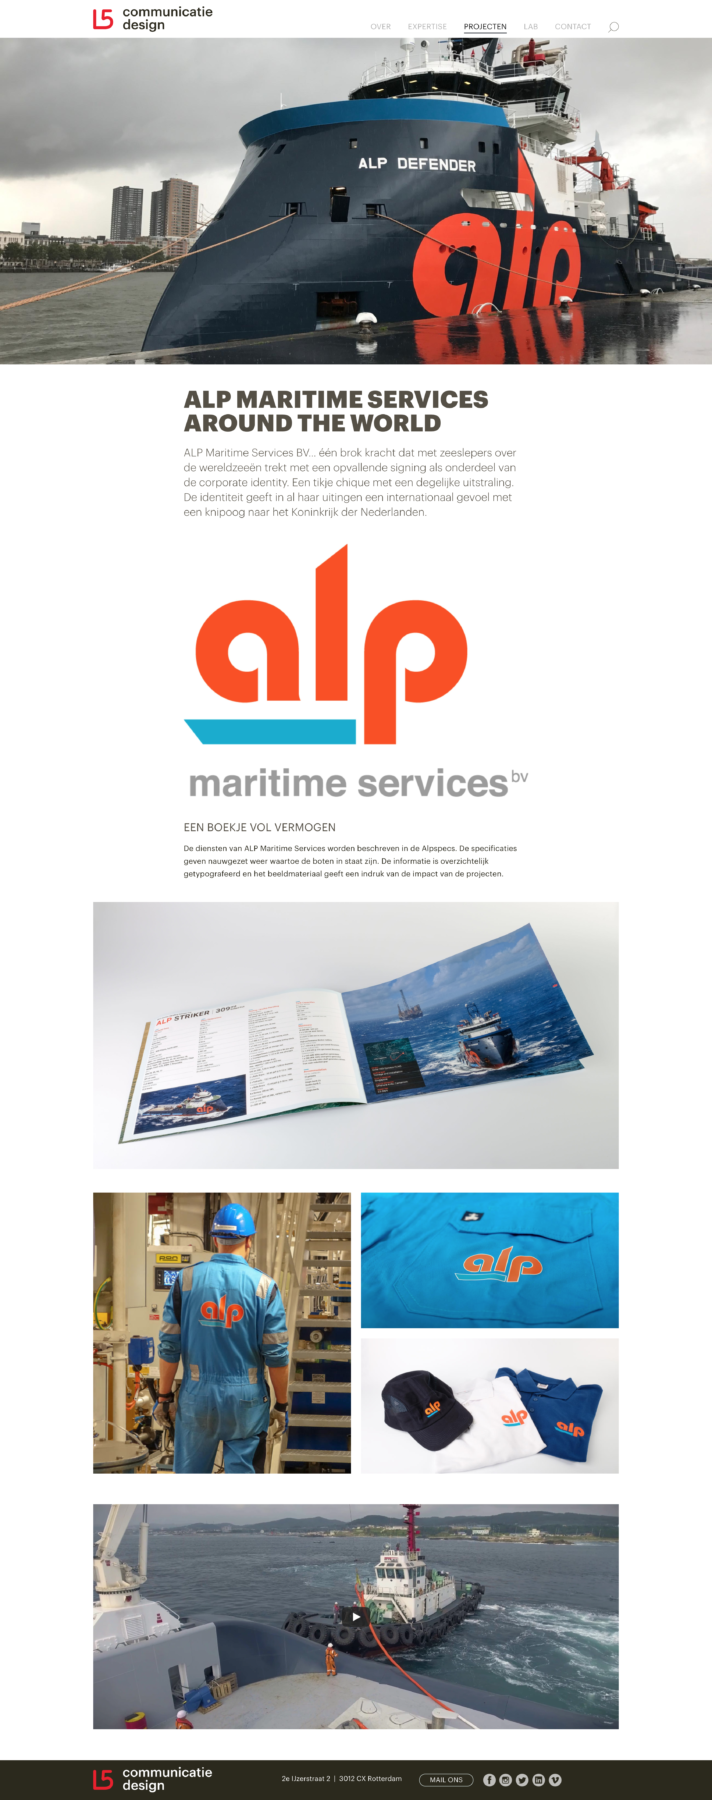 L5 nl projecten alp maritime services around the world 2018 09 13 16 33 04